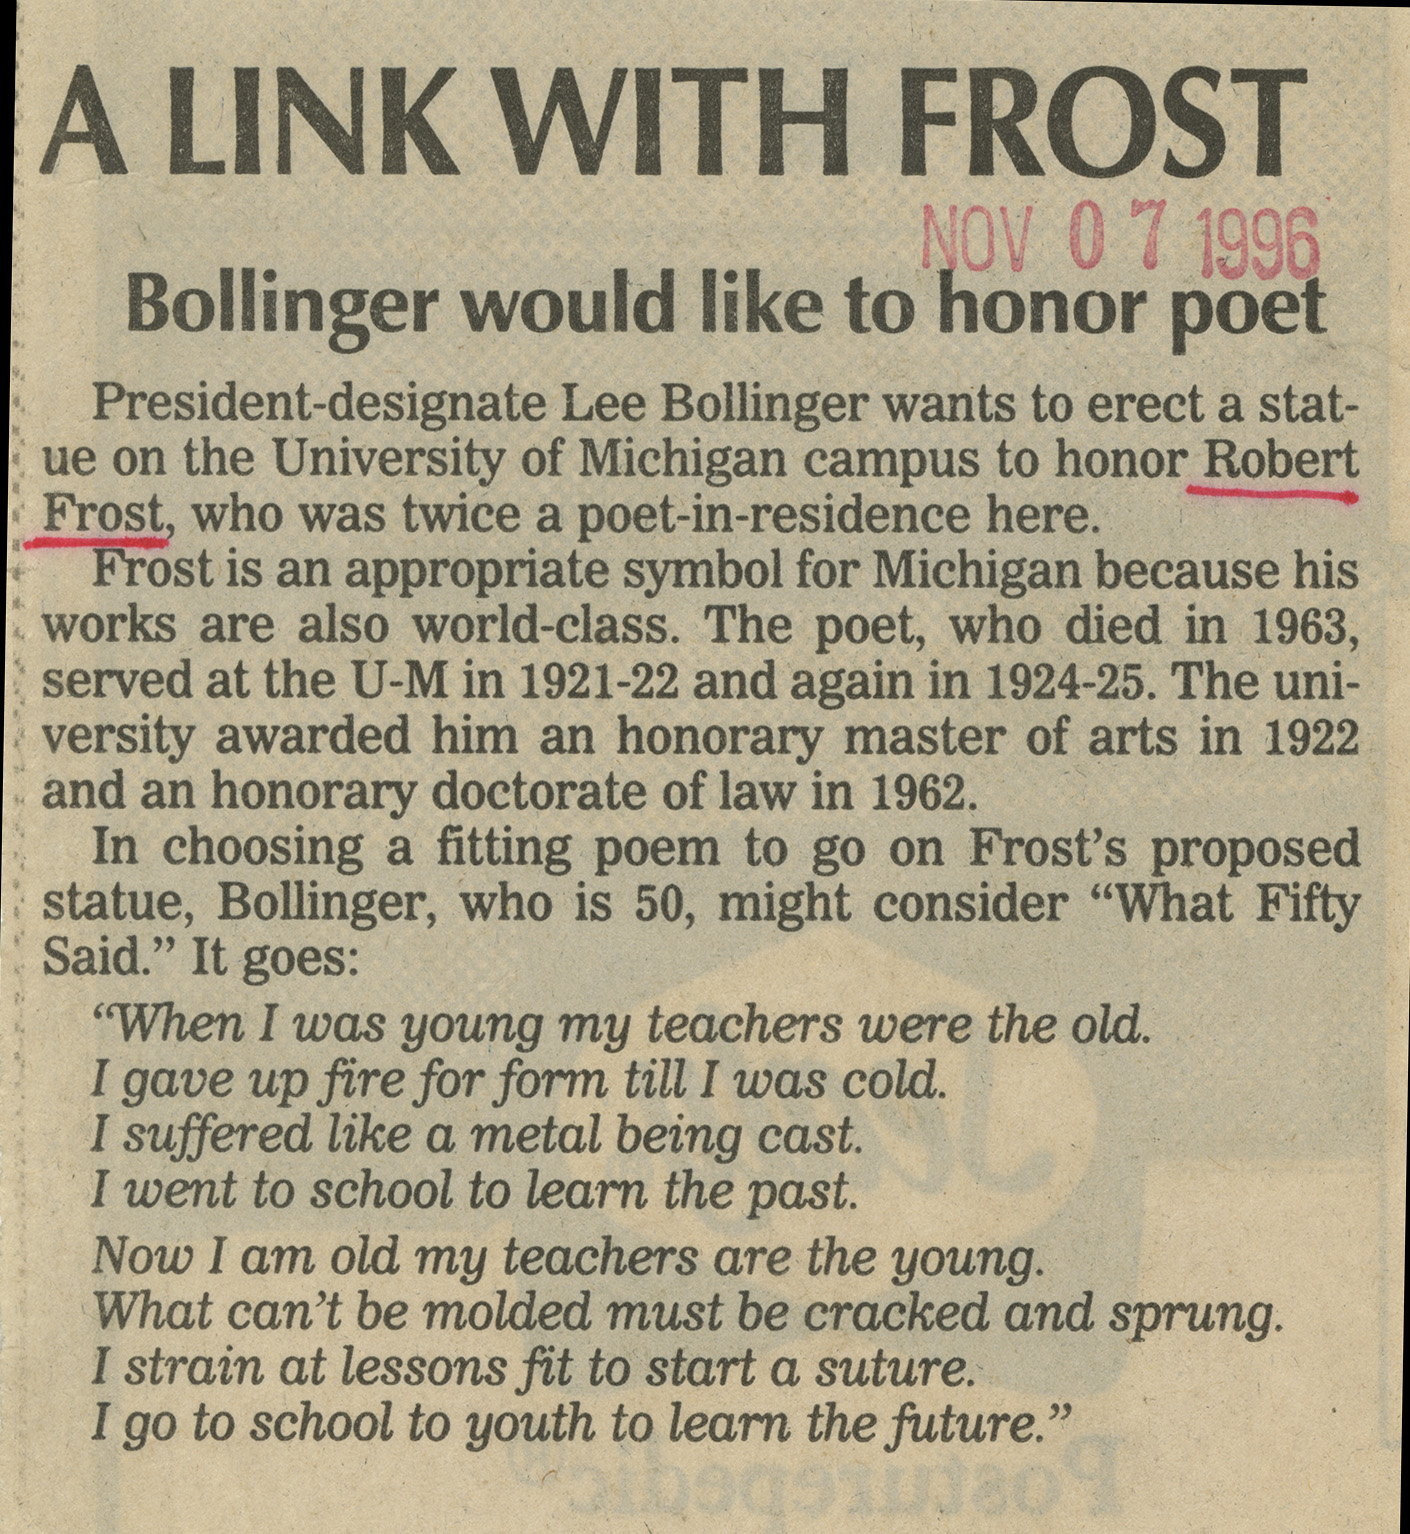 A Link with Frost image